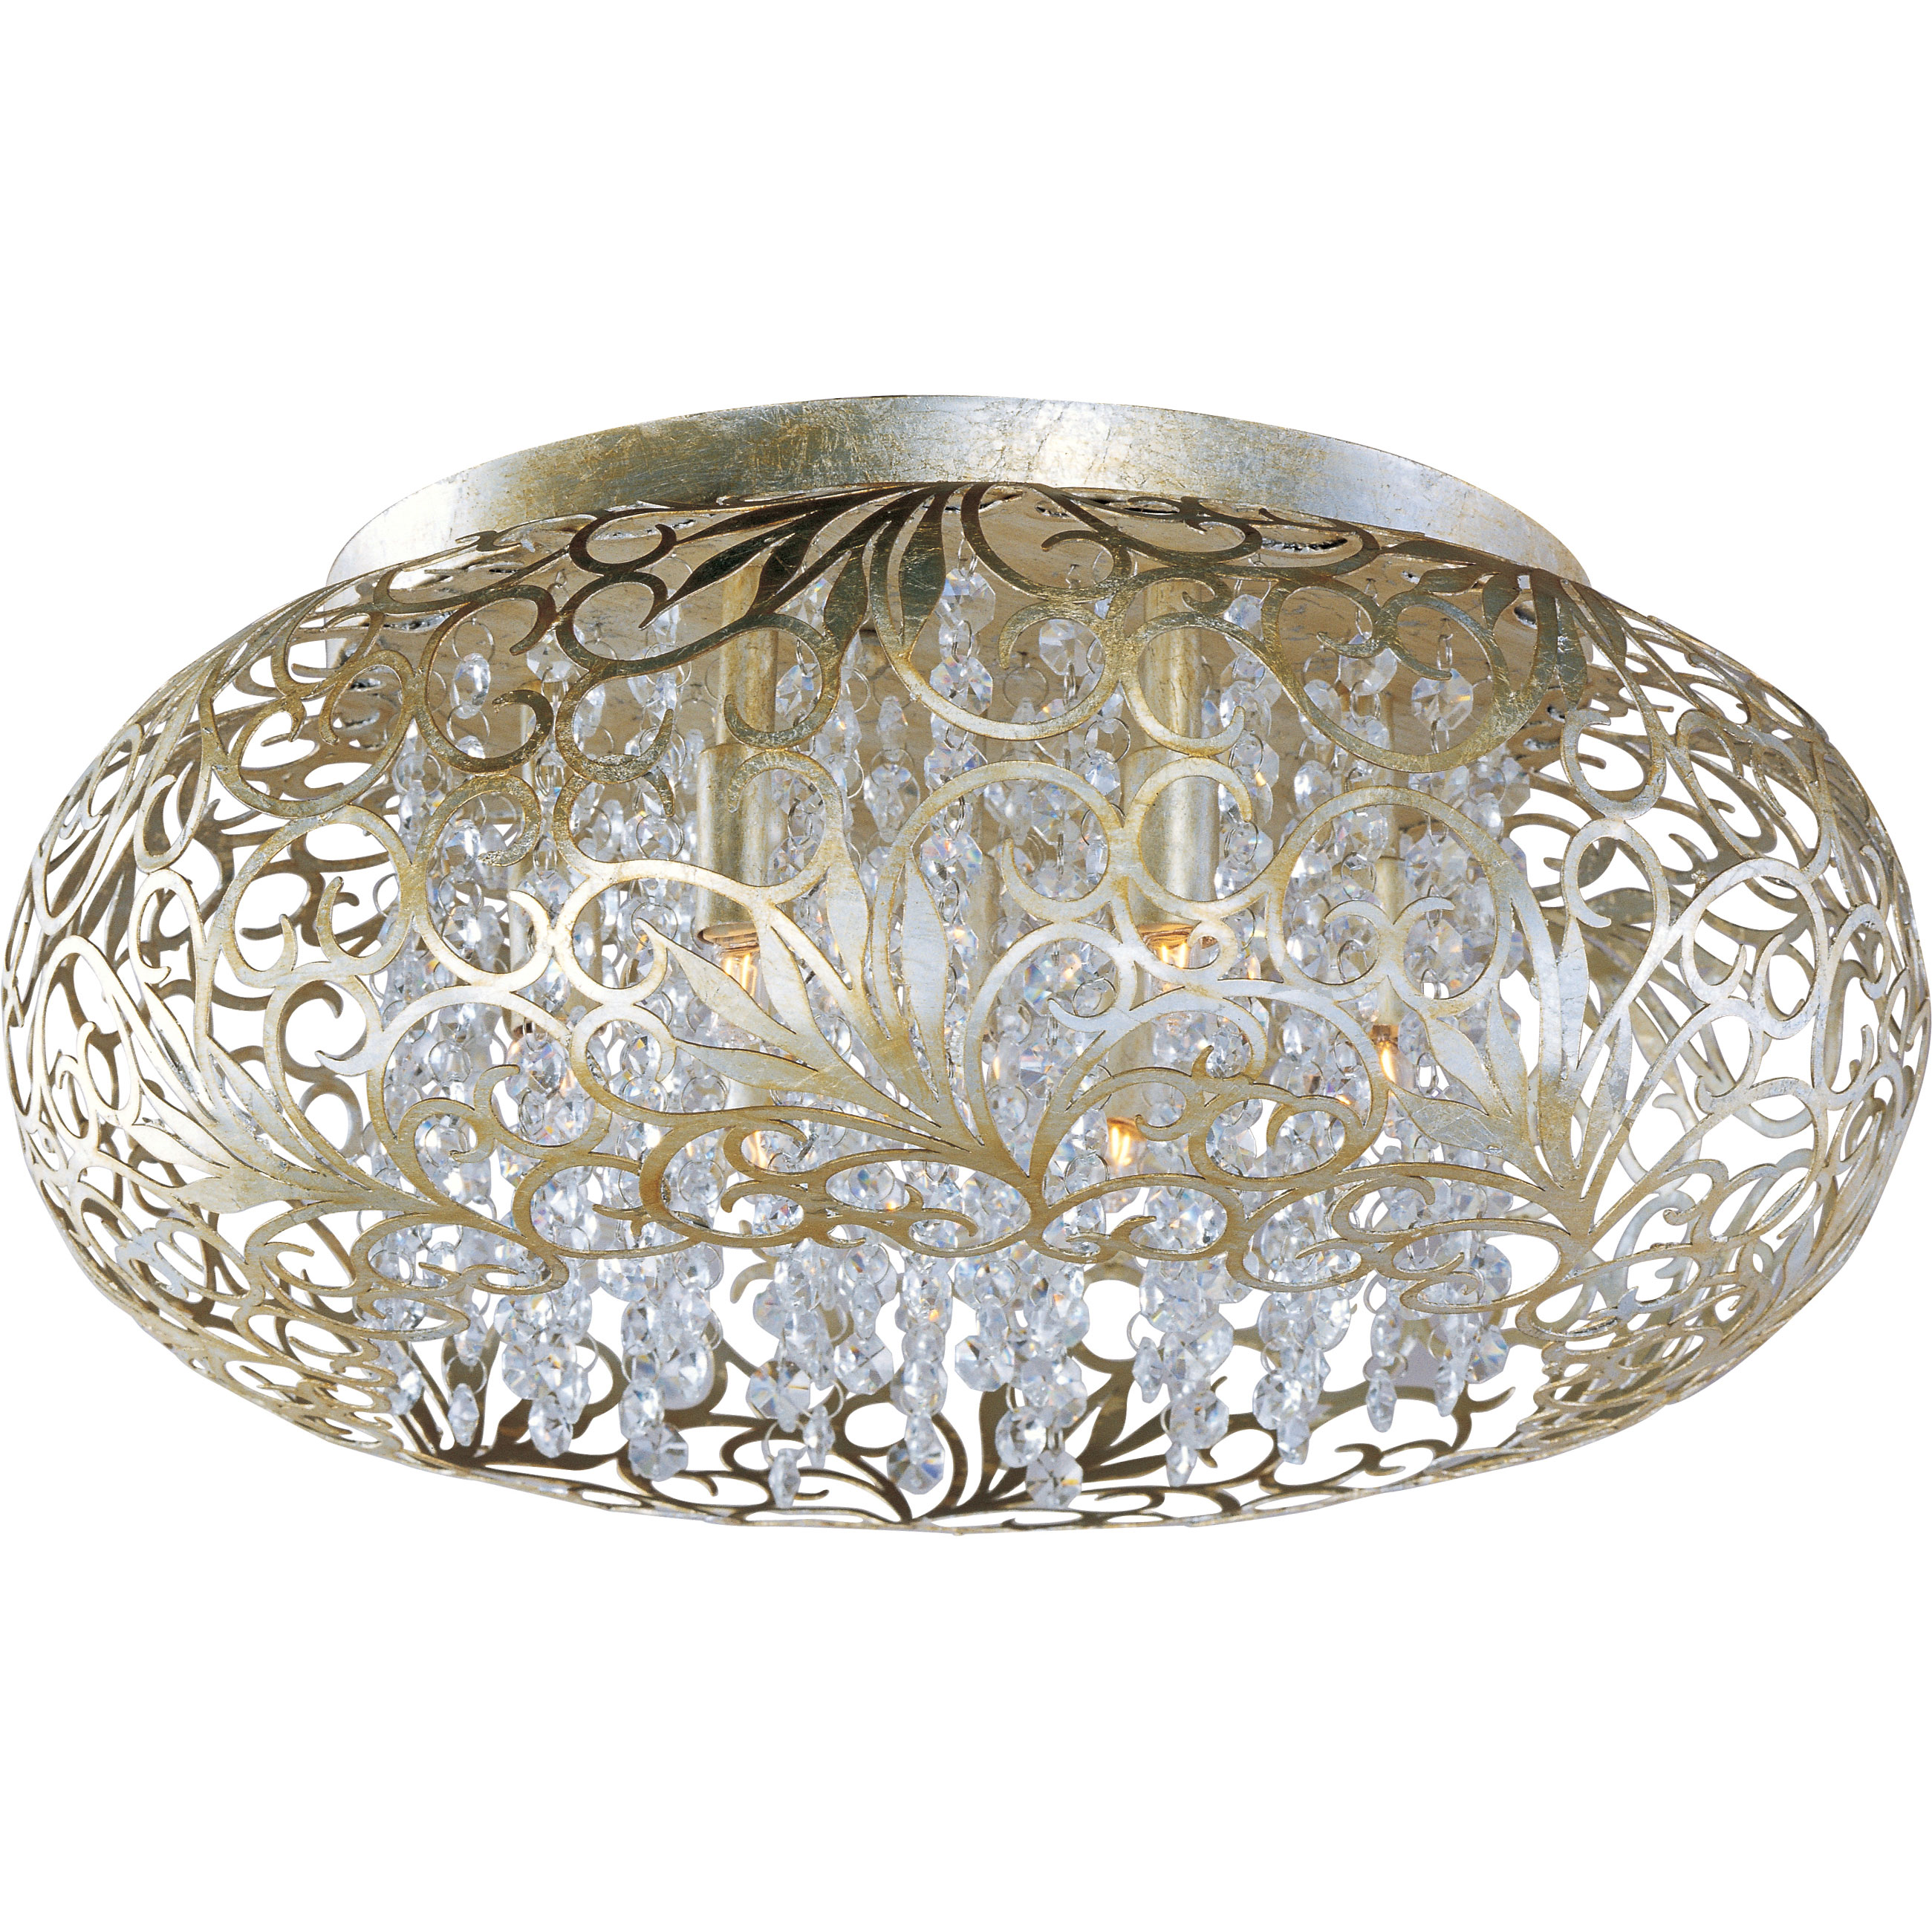 Arabesque Oval Ceiling Flush Light By Maxim Lighting